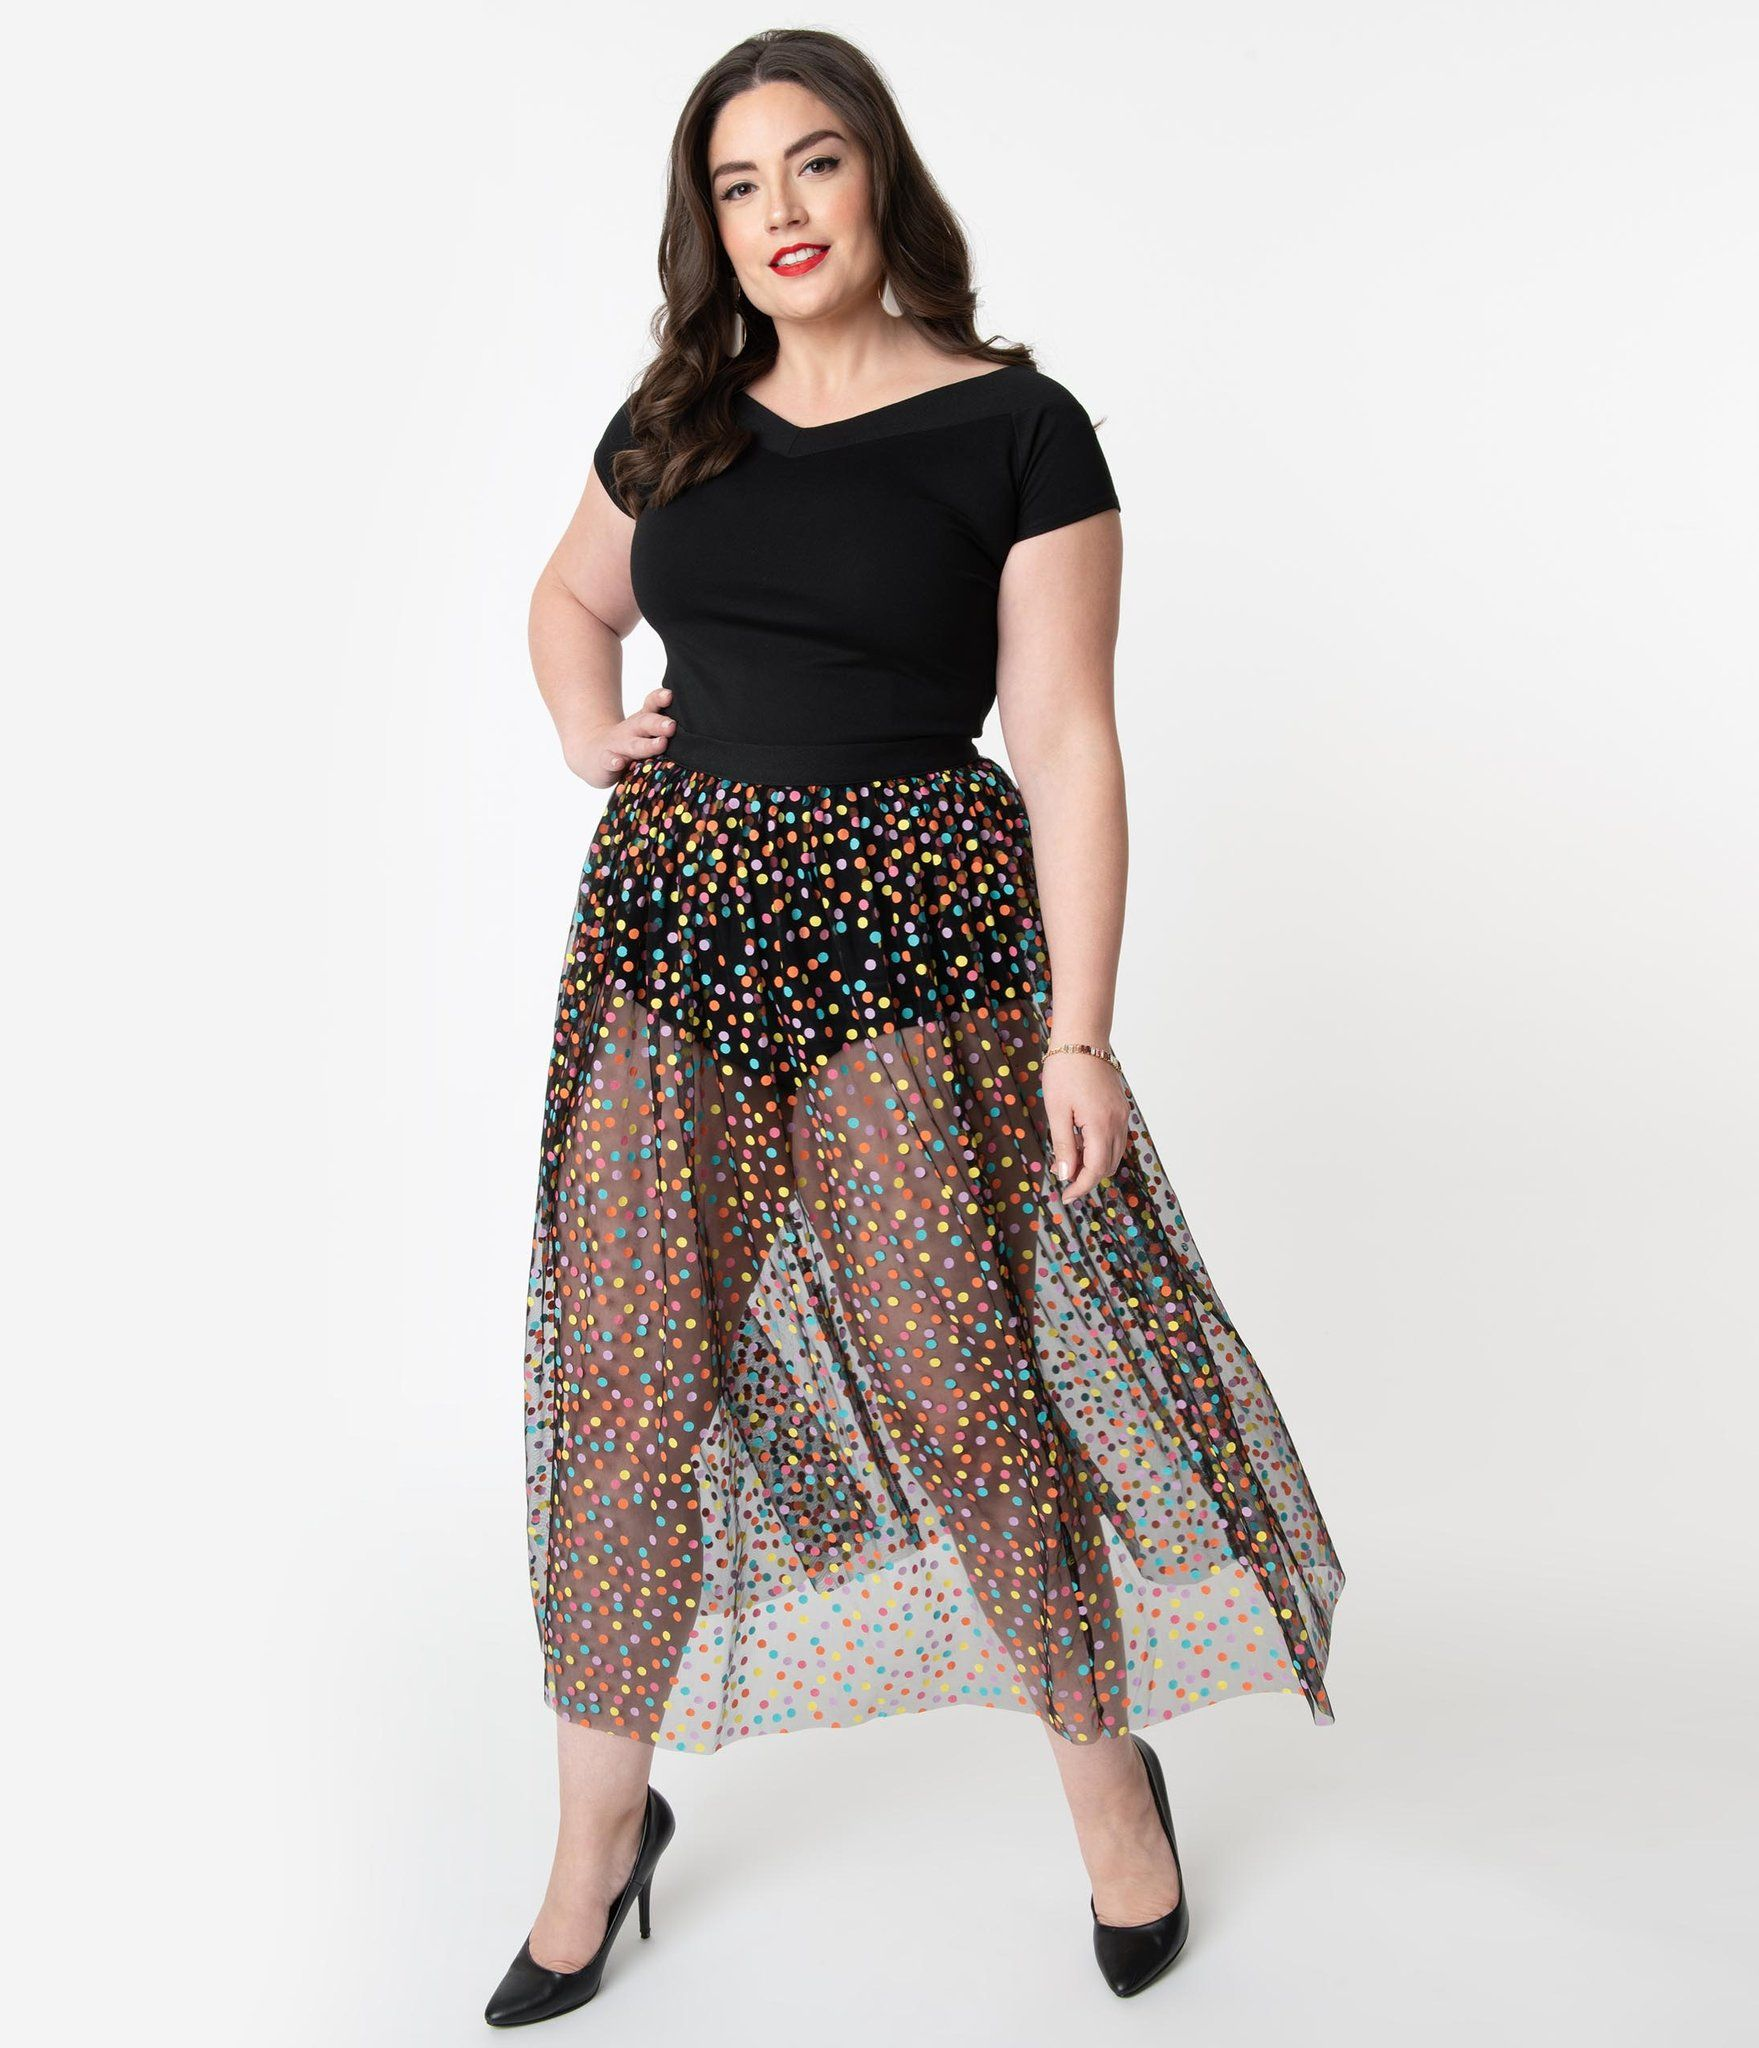 43+ Plus size black craft clothing ideas in 2021